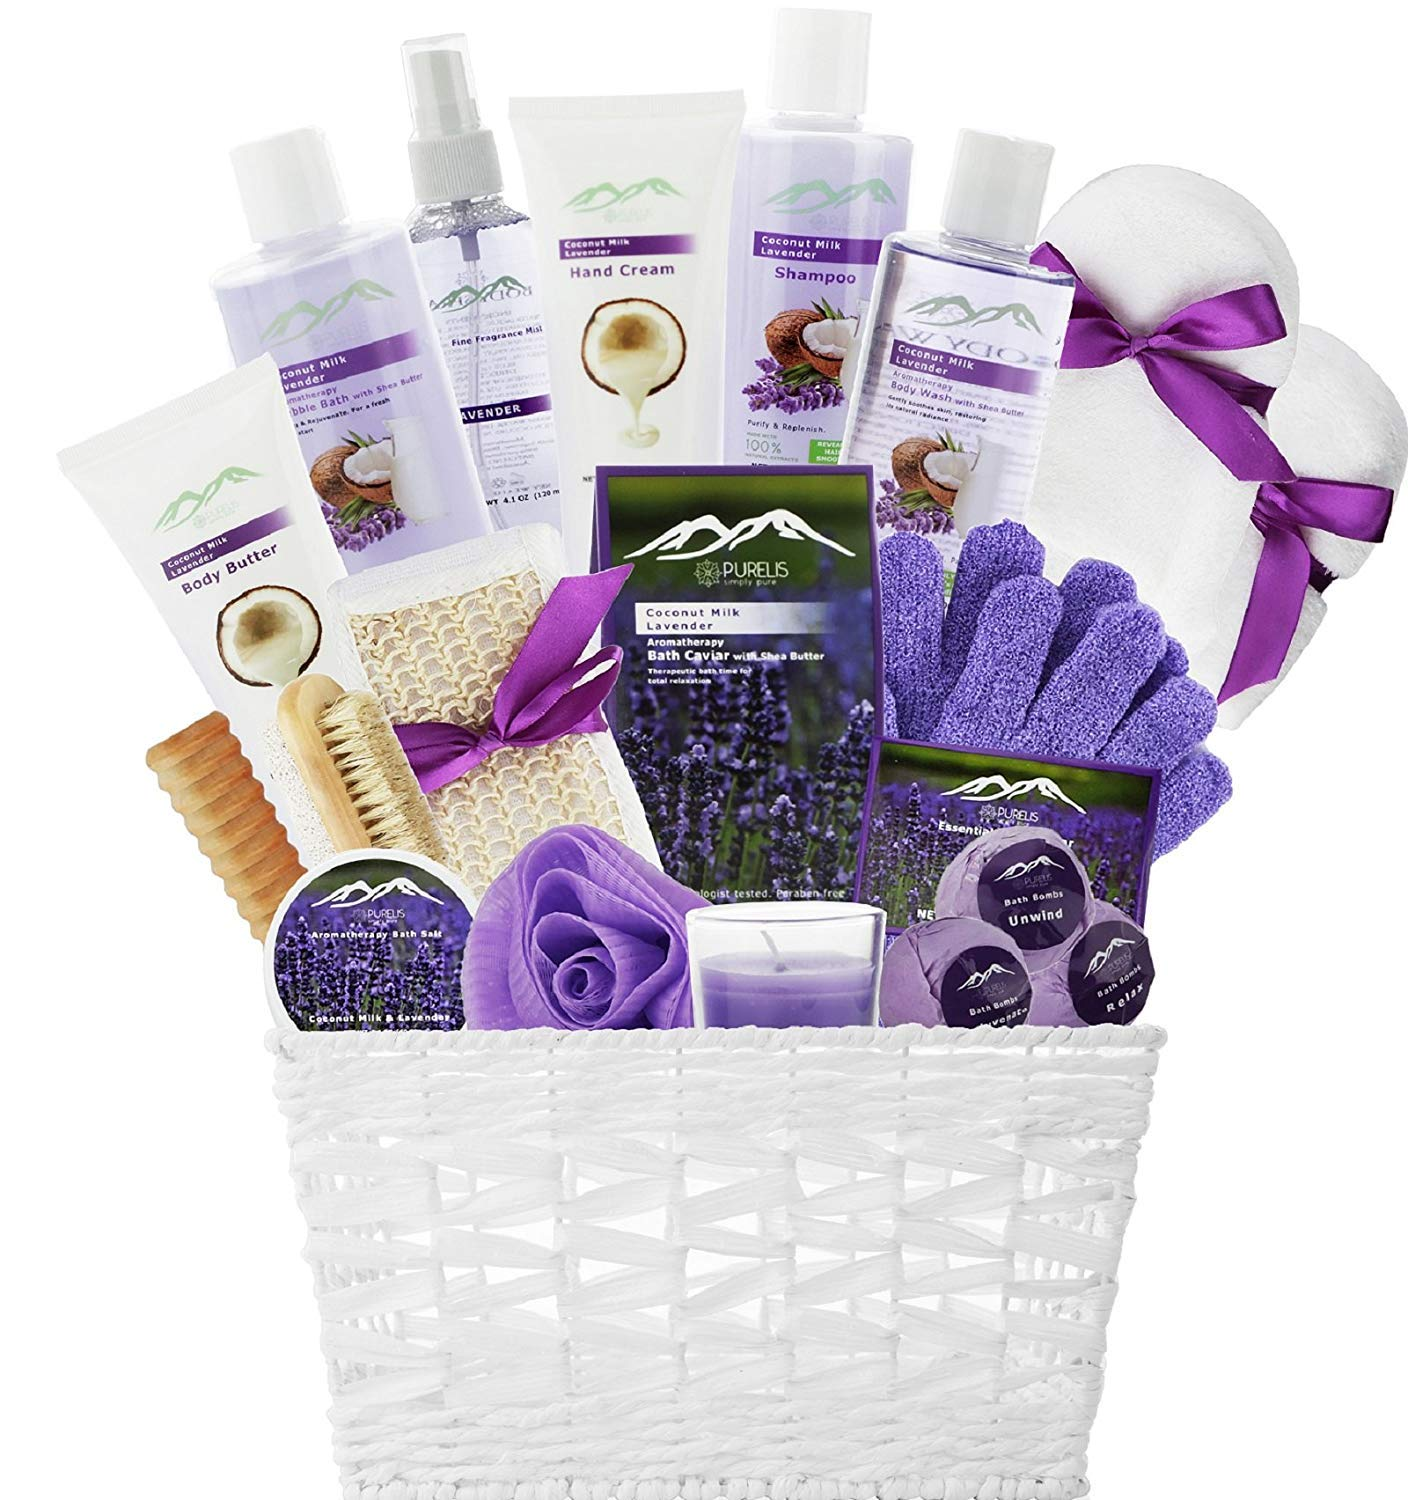 Spa Gift Baskets Beauty Gift Basket - Spa Basket, Spa Kit Bed and Bath Body Works Gift Baskets for Women! Bath Gift Set Bubble Bath Basket Body Lotion Gift Set for Holidays (Lavender Coconut Milk) by Purelis